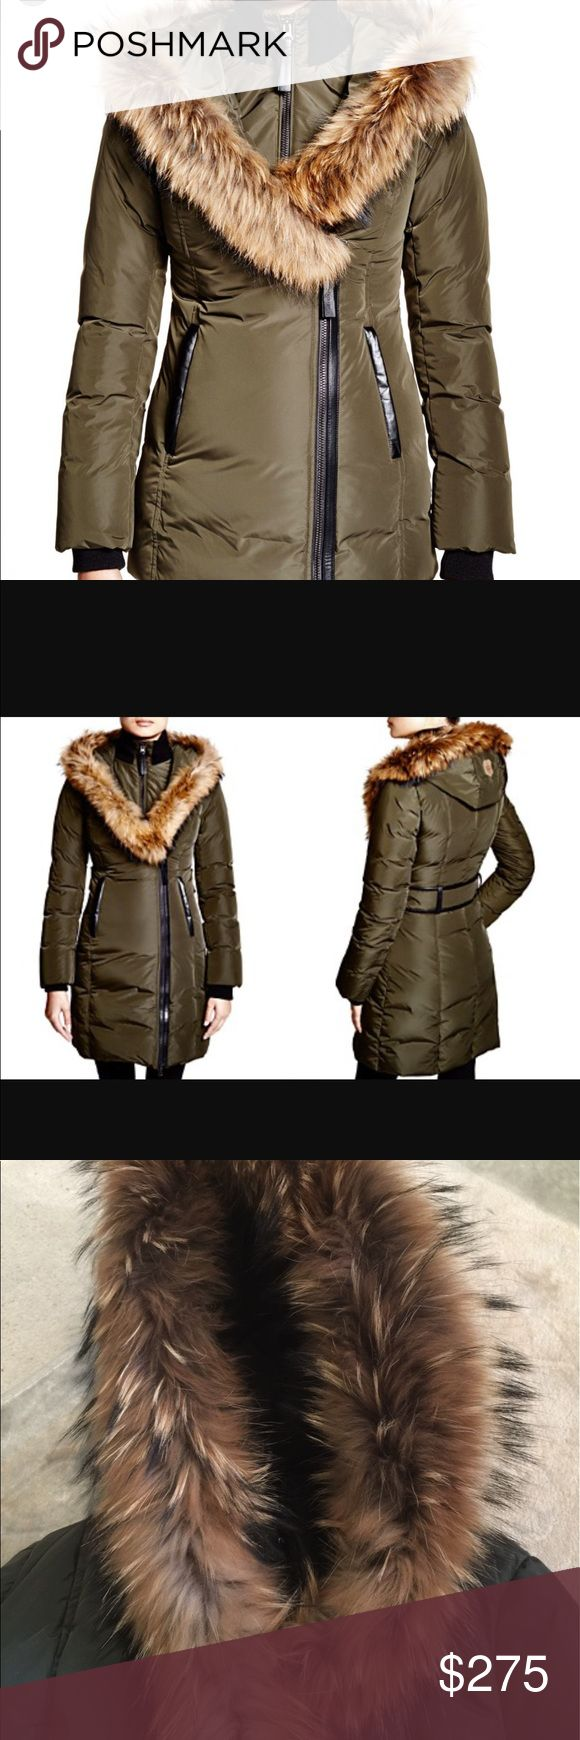 Mackage ADALI  women's down jacket with fur Mackage down jacket. This is a BEAUTIFUL  coat. It's warm and has a fitted look. The color is an army green. Real fur trim and has only been worn a few times it looks new. Size small Mackage Jackets & Coats Puffers